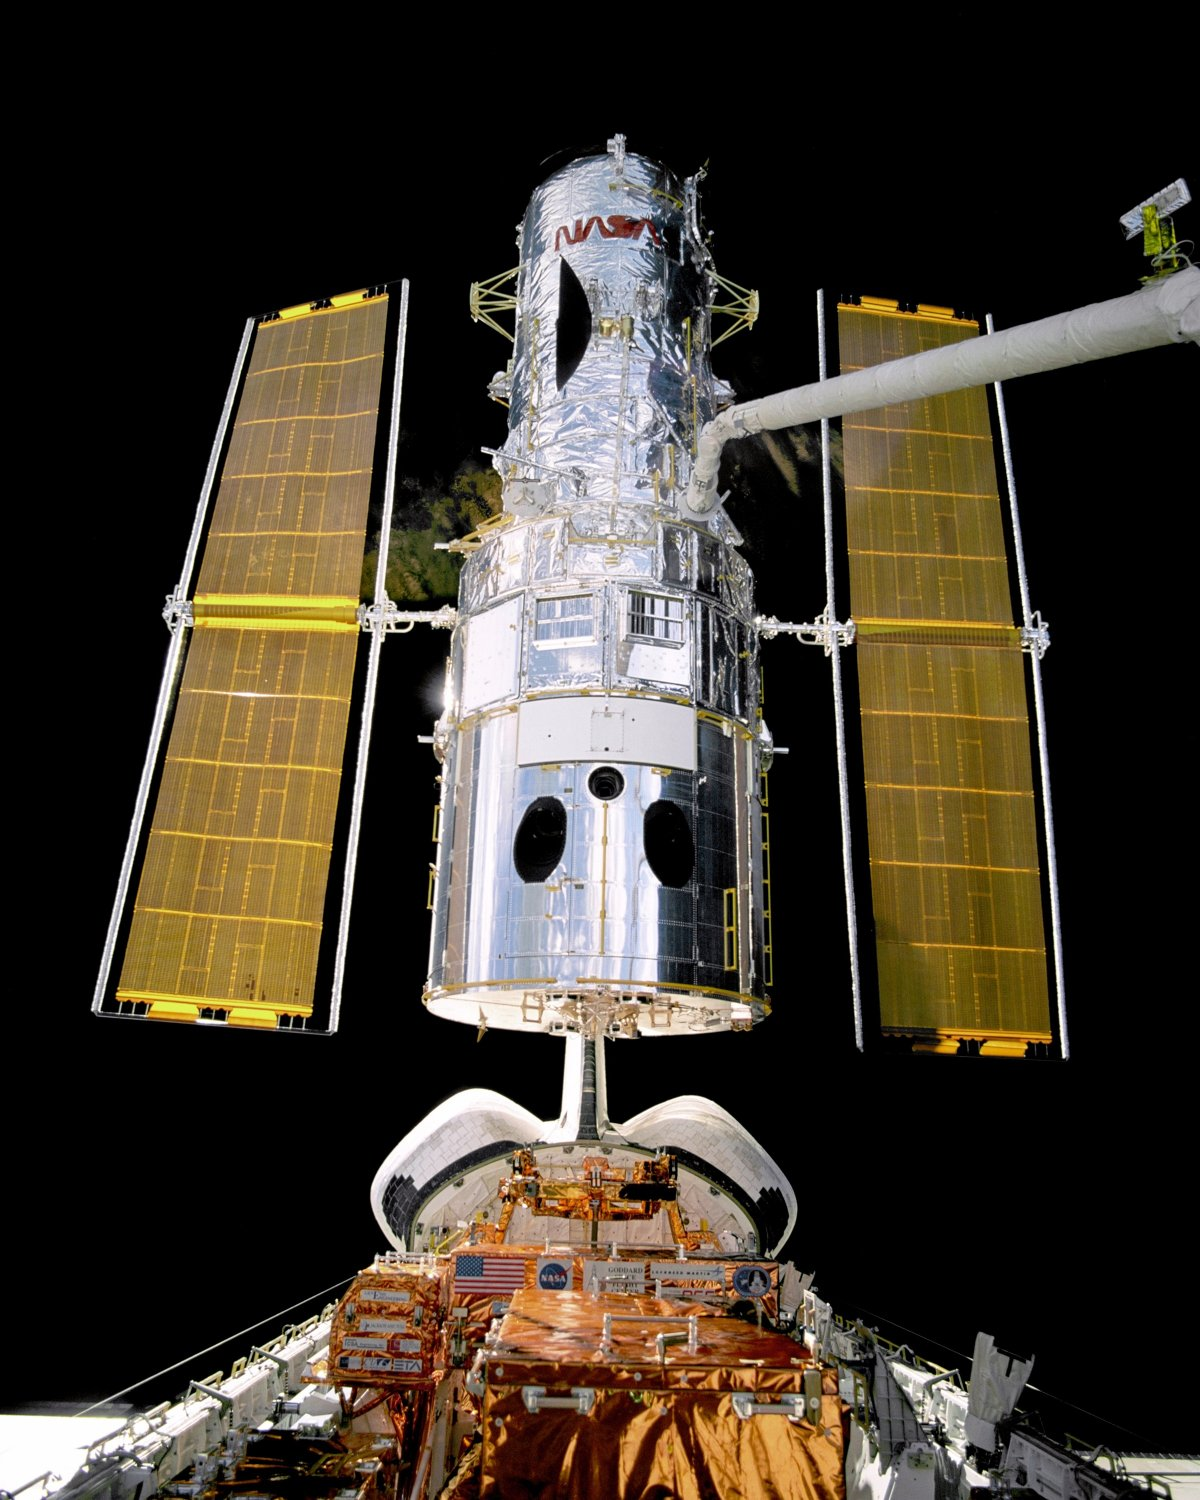 HUBBLE TELESCOPE REPAIR SPACE SHUTTLE DISCOVERY STS-82 8X10 NASA PHOTO (EP-206)